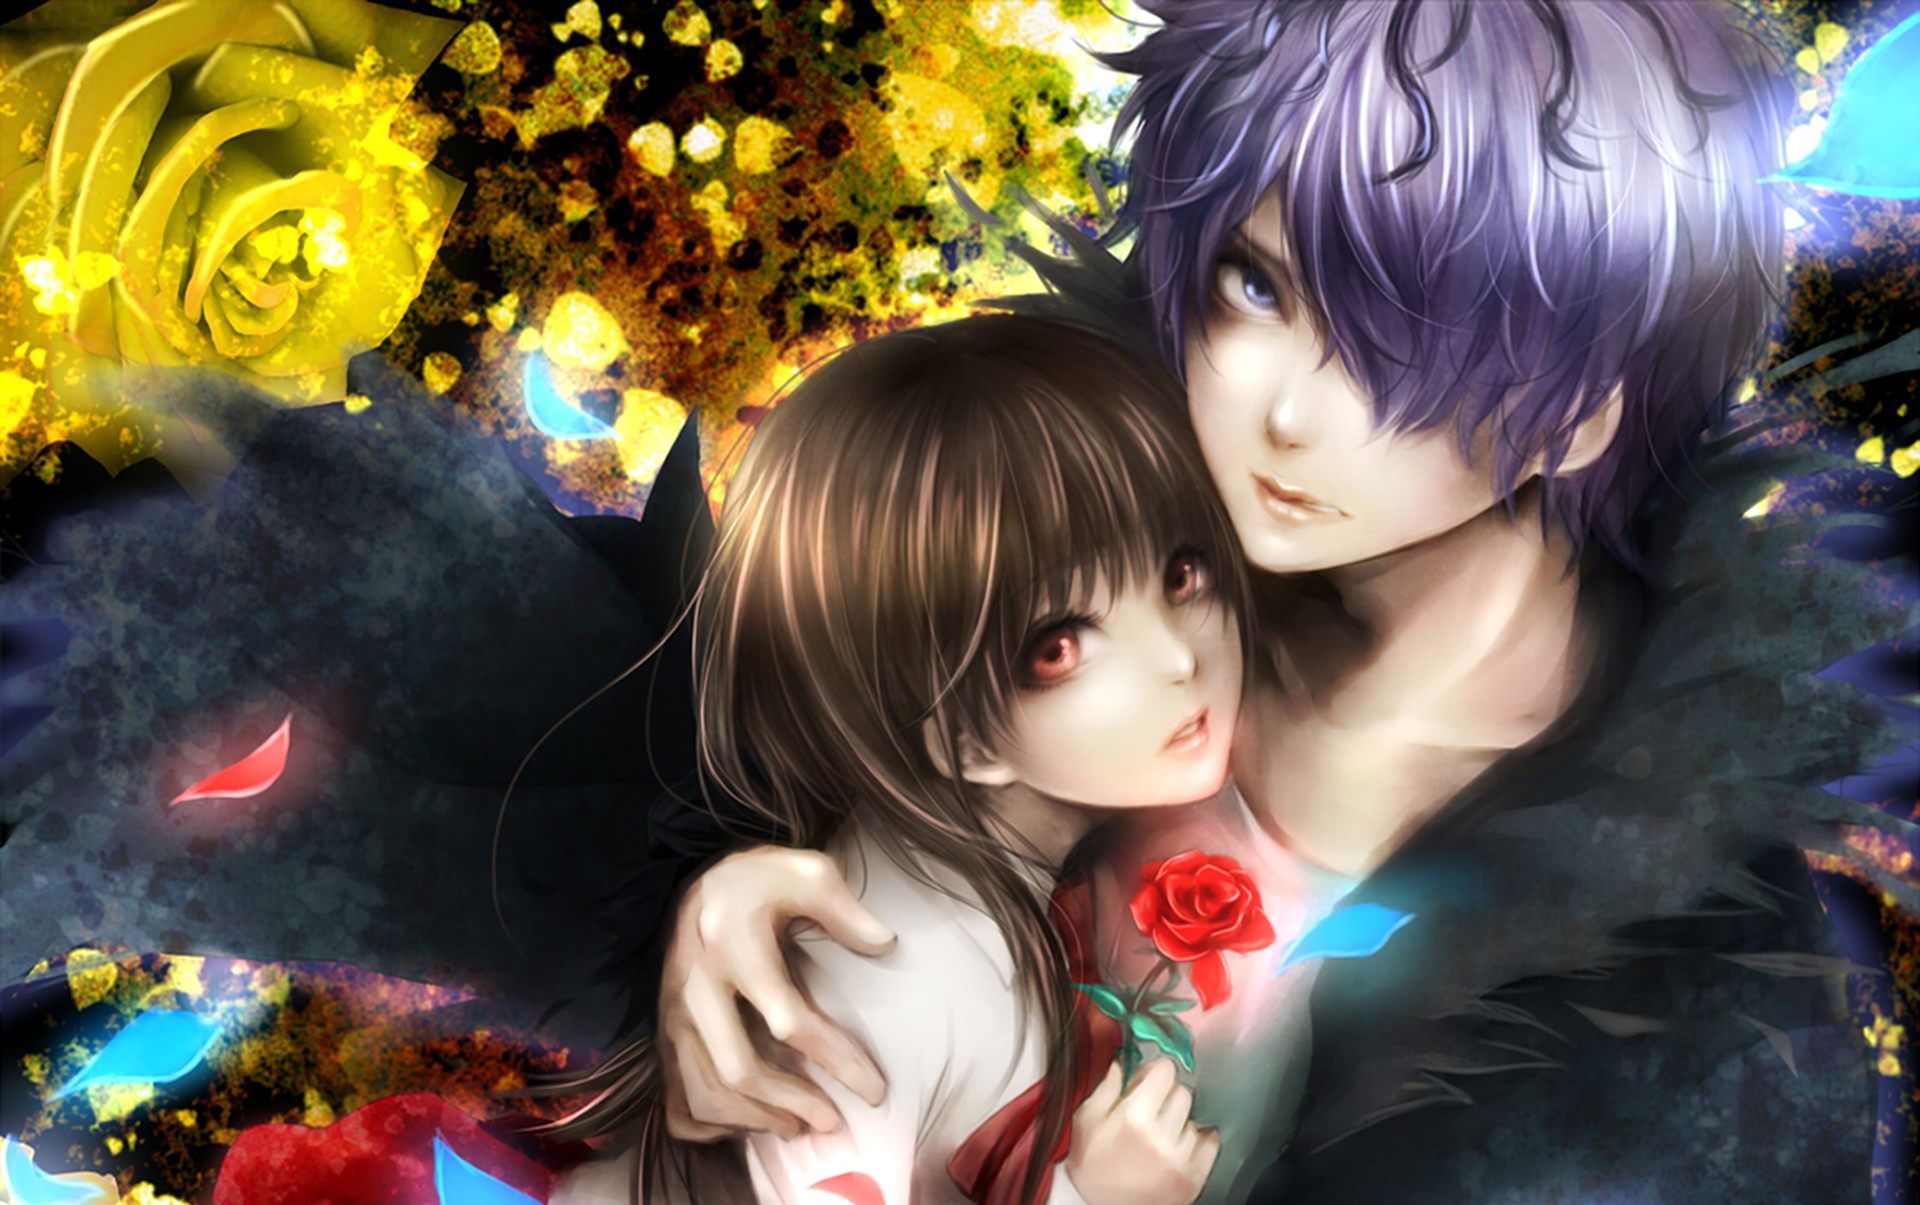 Girl And Boy Love Desktop Wallpaper : Original love romance boy girl art wallpaper 1920x1205 30914 WallpaperUP